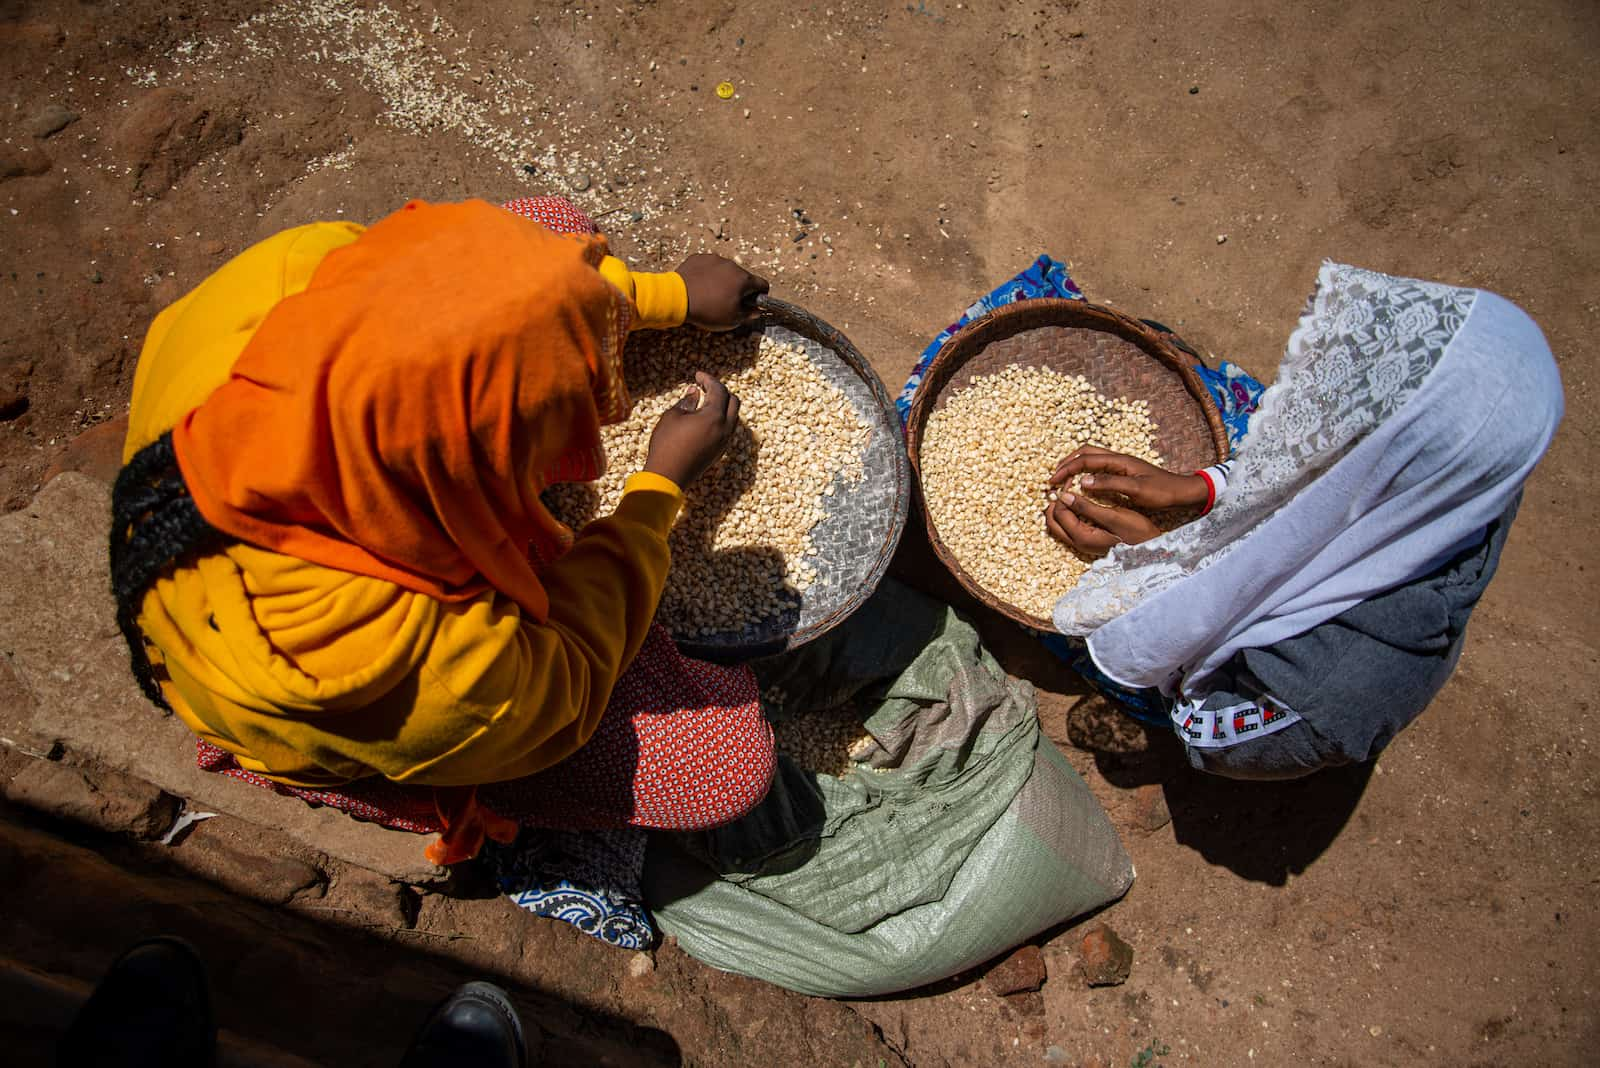 A photo of two girls from above, both sitting on the ground sorting grains.